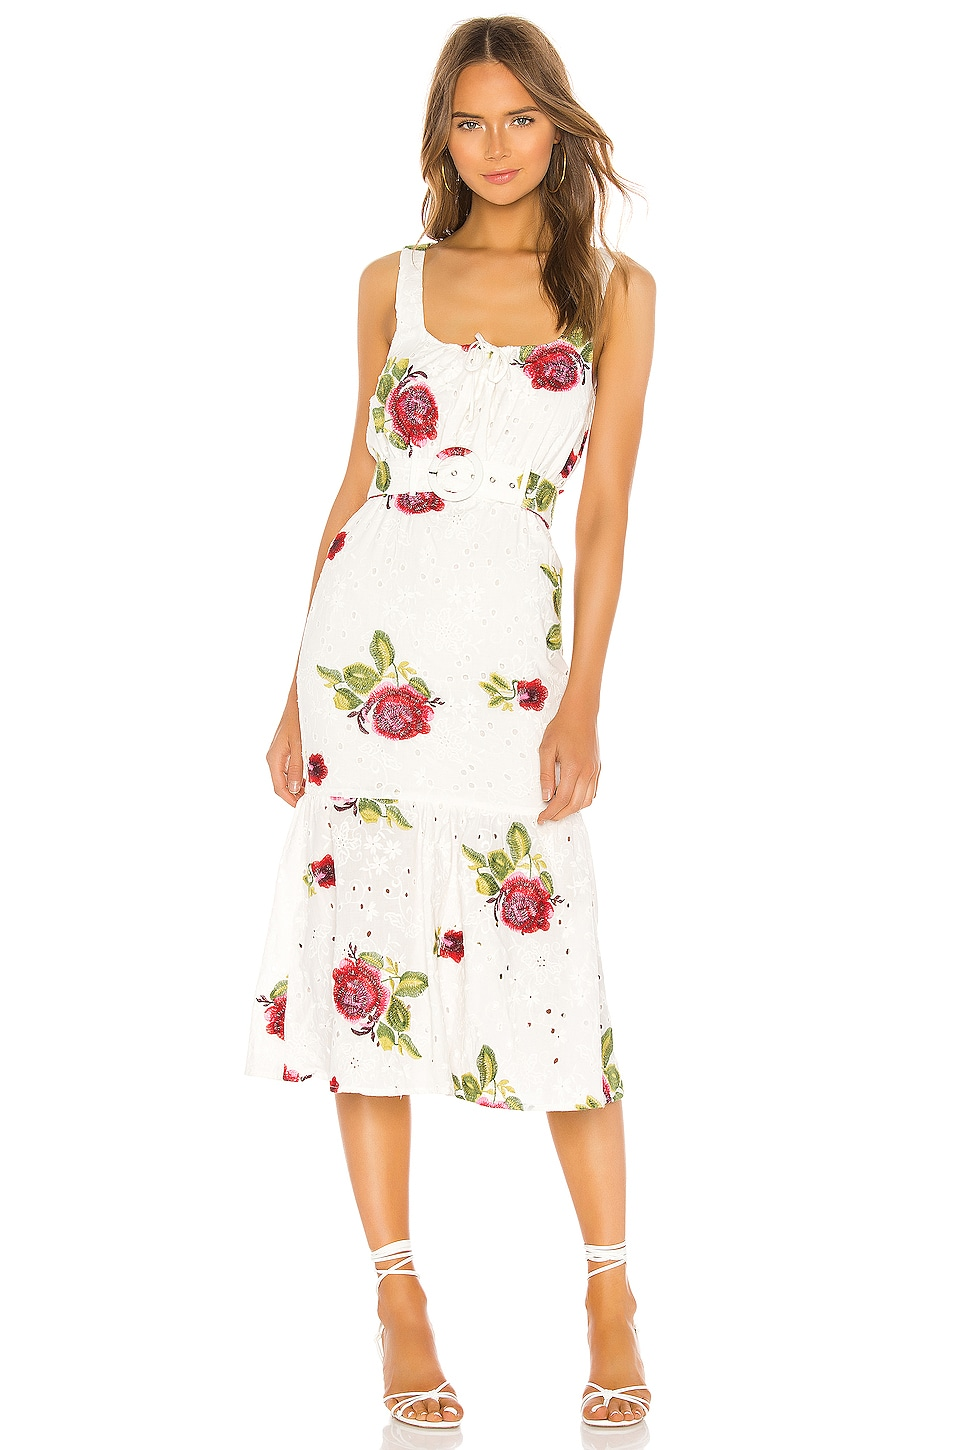 MAJORELLE Mariah Midi Dress in White & Pink